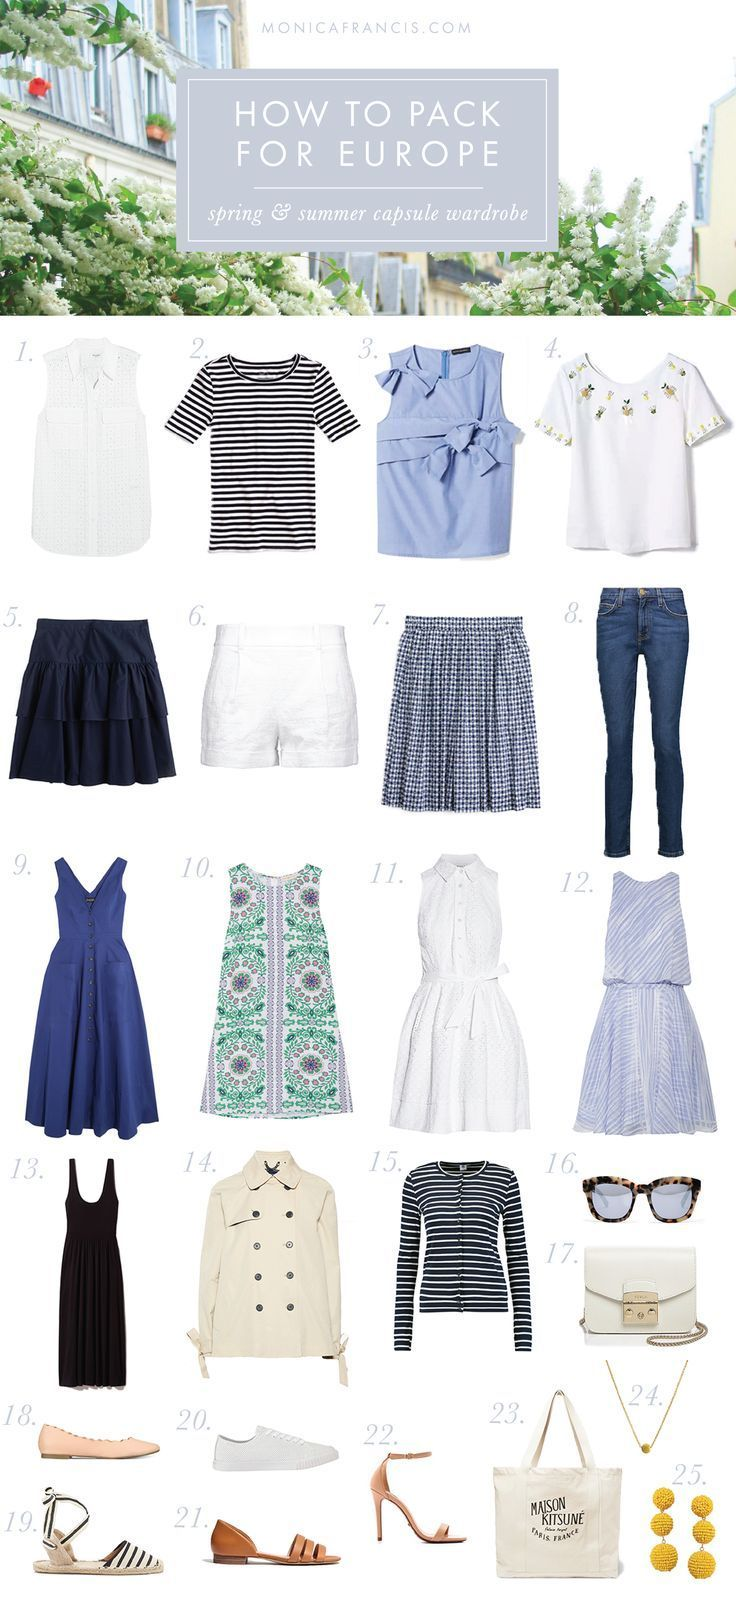 How to Pack for Europe: Spring & Summer Capsule Wardrobe | How I packed a 25-item capsule wardrobe for 12 weeks in Europe, and what to wear in France and Italy | Packing Light | Travel Tips | Carry-On Packing